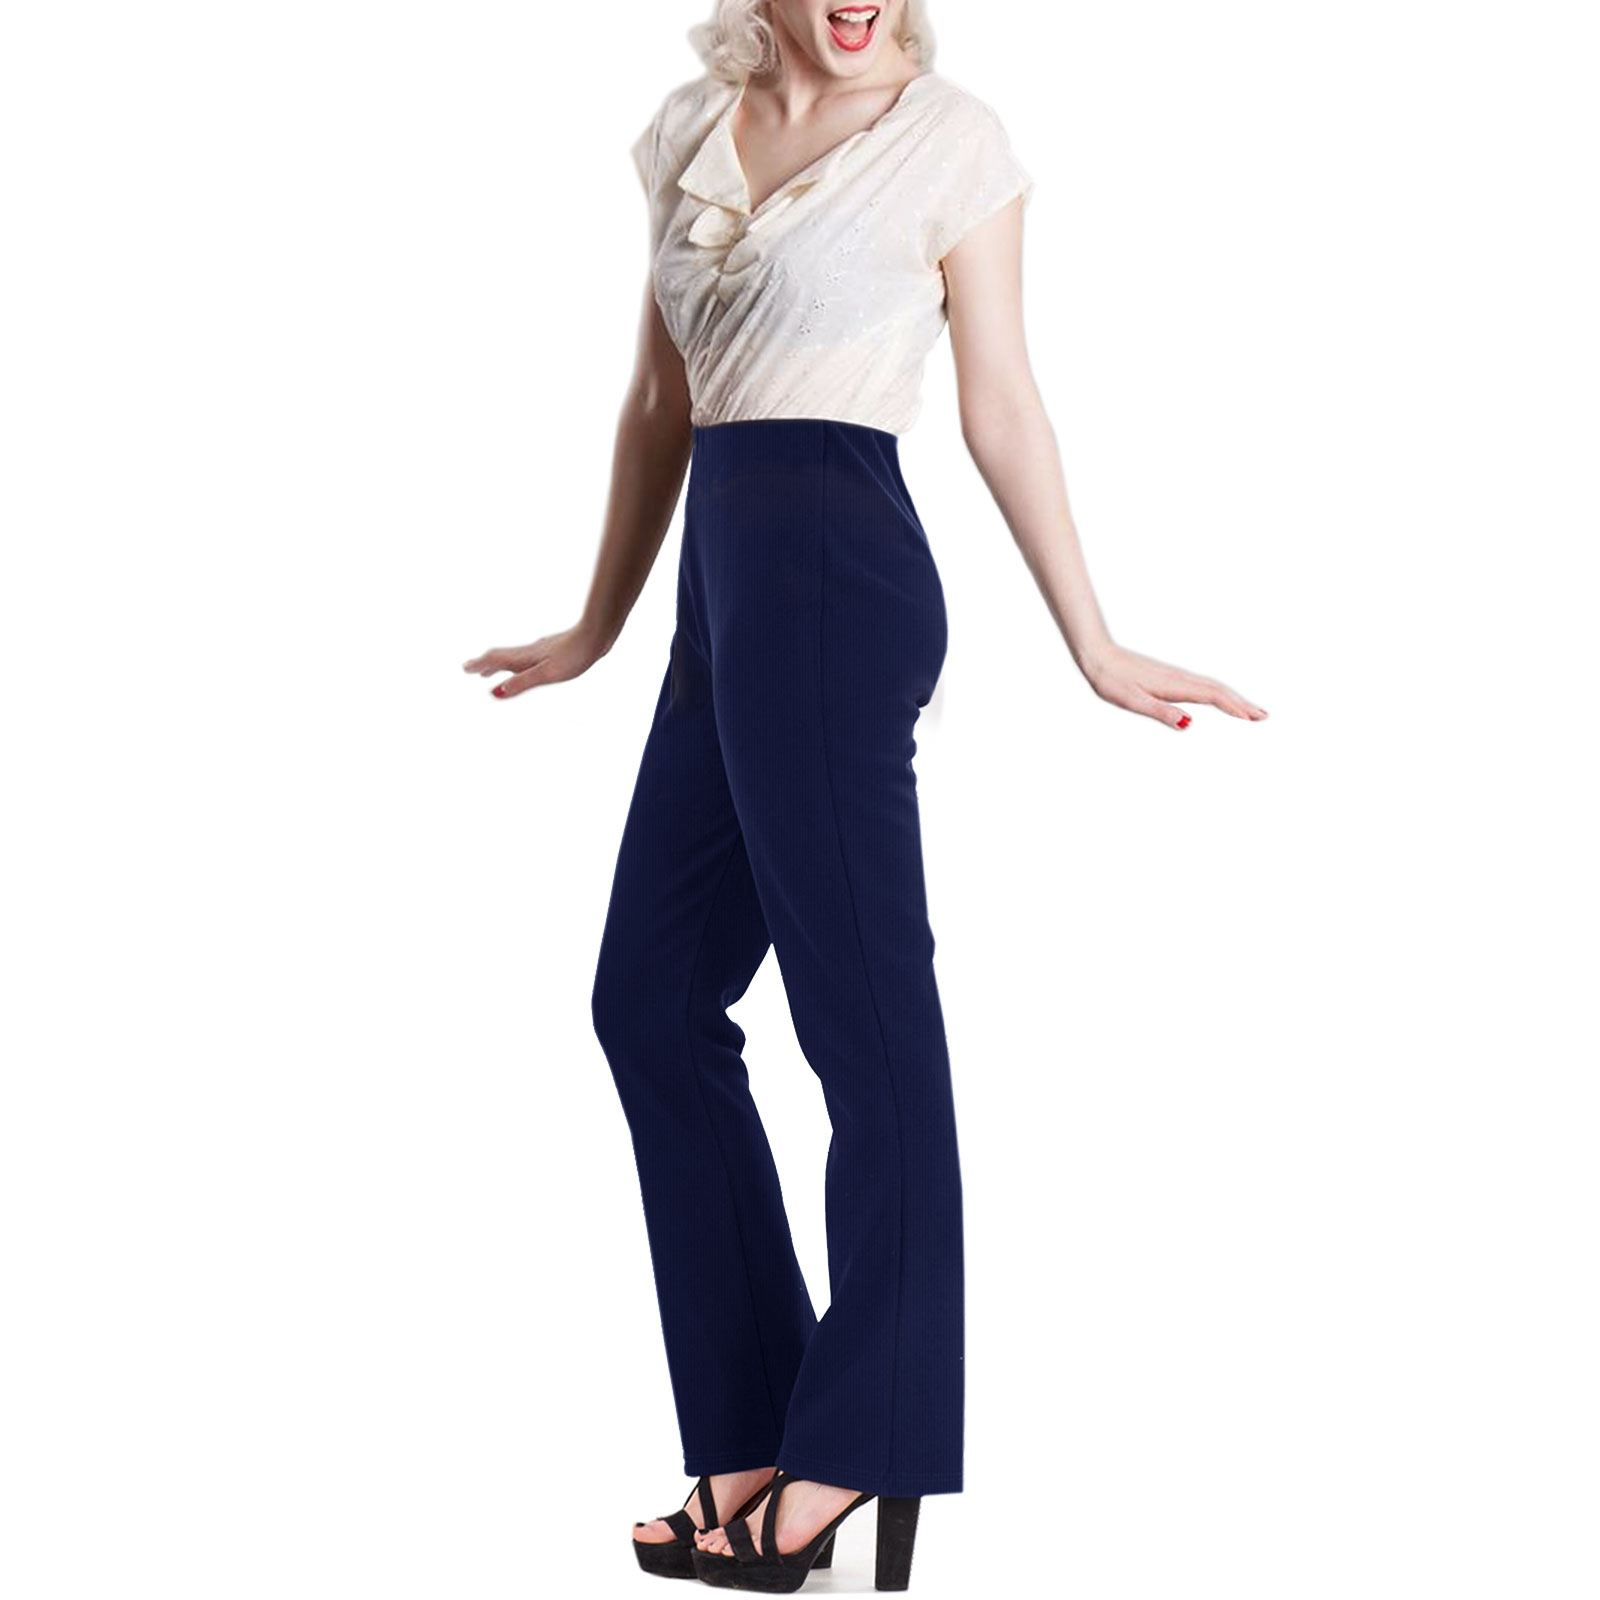 IXIMO Women's Tapered Pants % Linen Drawstring Back Elastic Waist Pants Trousers with Pockets. by IXIMO. $ - $ $ 32 $ 36 99 Prime. FREE Shipping on eligible orders. Some sizes/colors are Prime eligible. out of 5 stars 9.